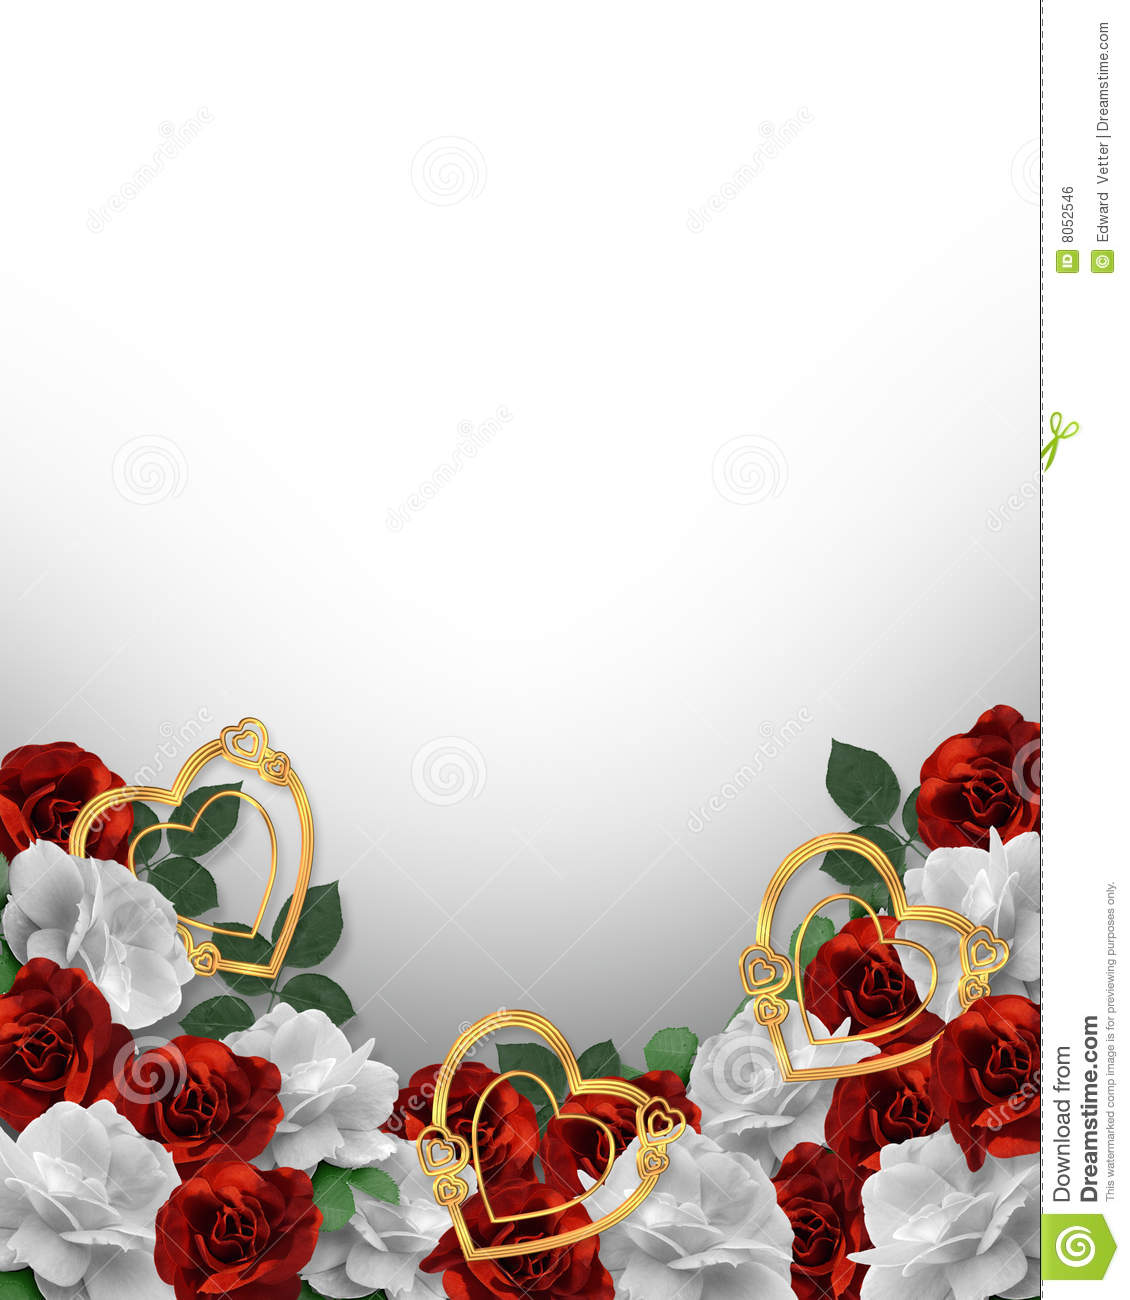 Valentines Day Hearts And Roses Border Royalty Free Stock Image ...